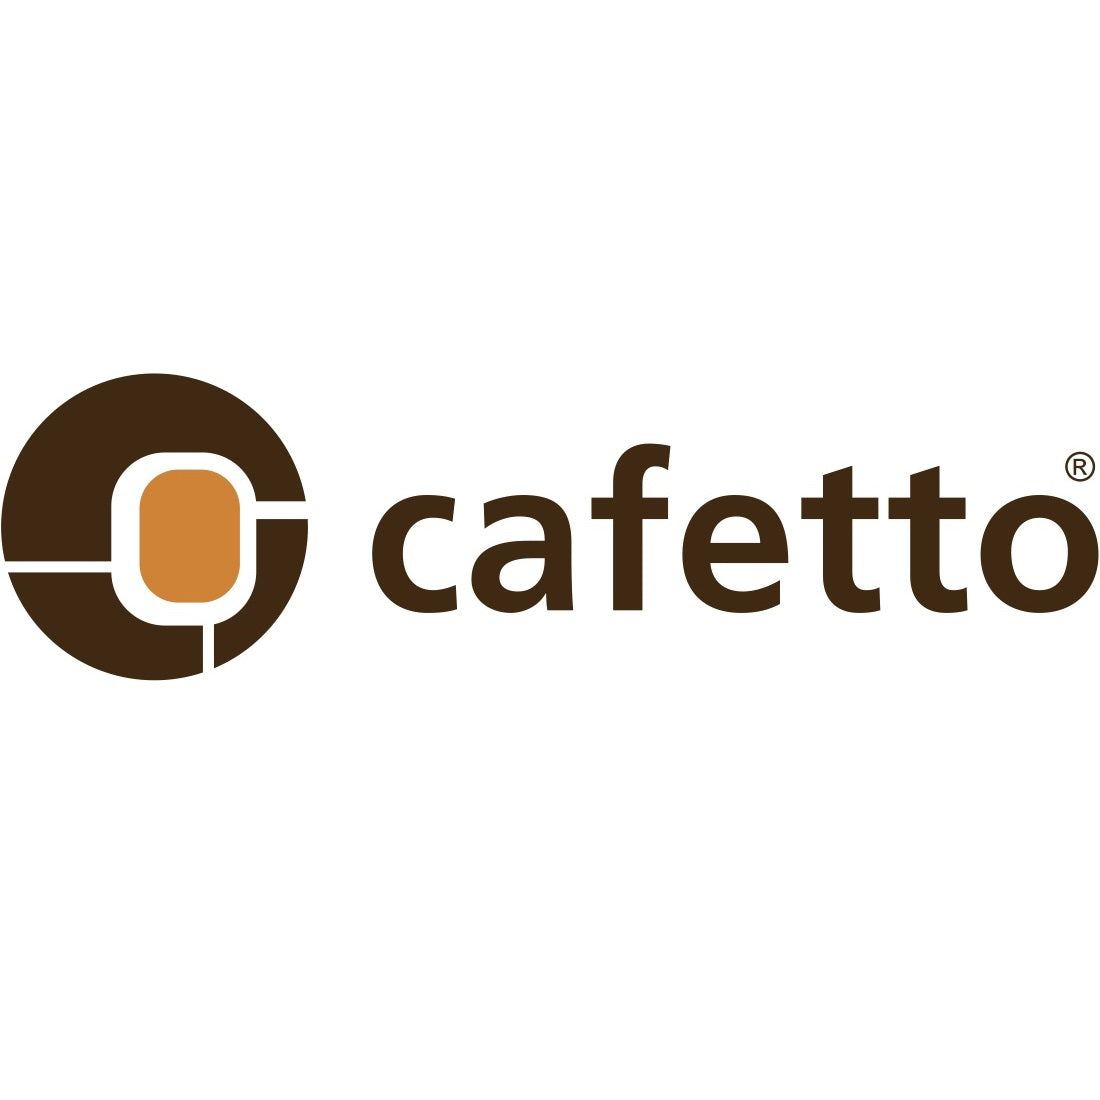 Cafetto Coffee and Espresso Cleaning Products